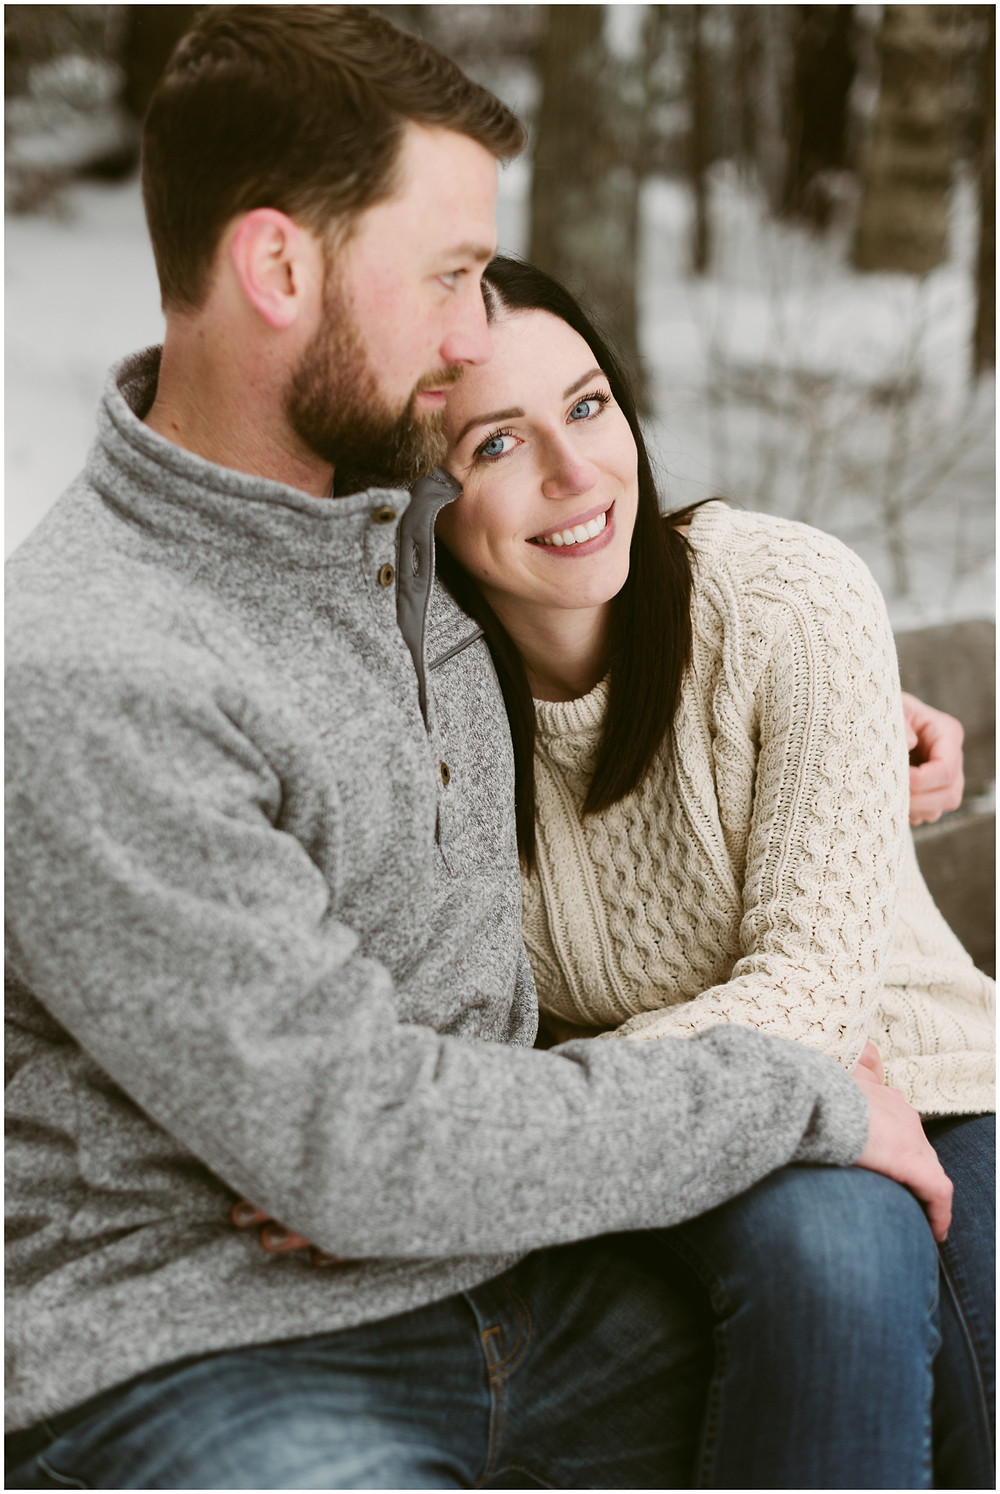 Snowy engagement session at the Adirondack Loj by Mountainaire Gatherings